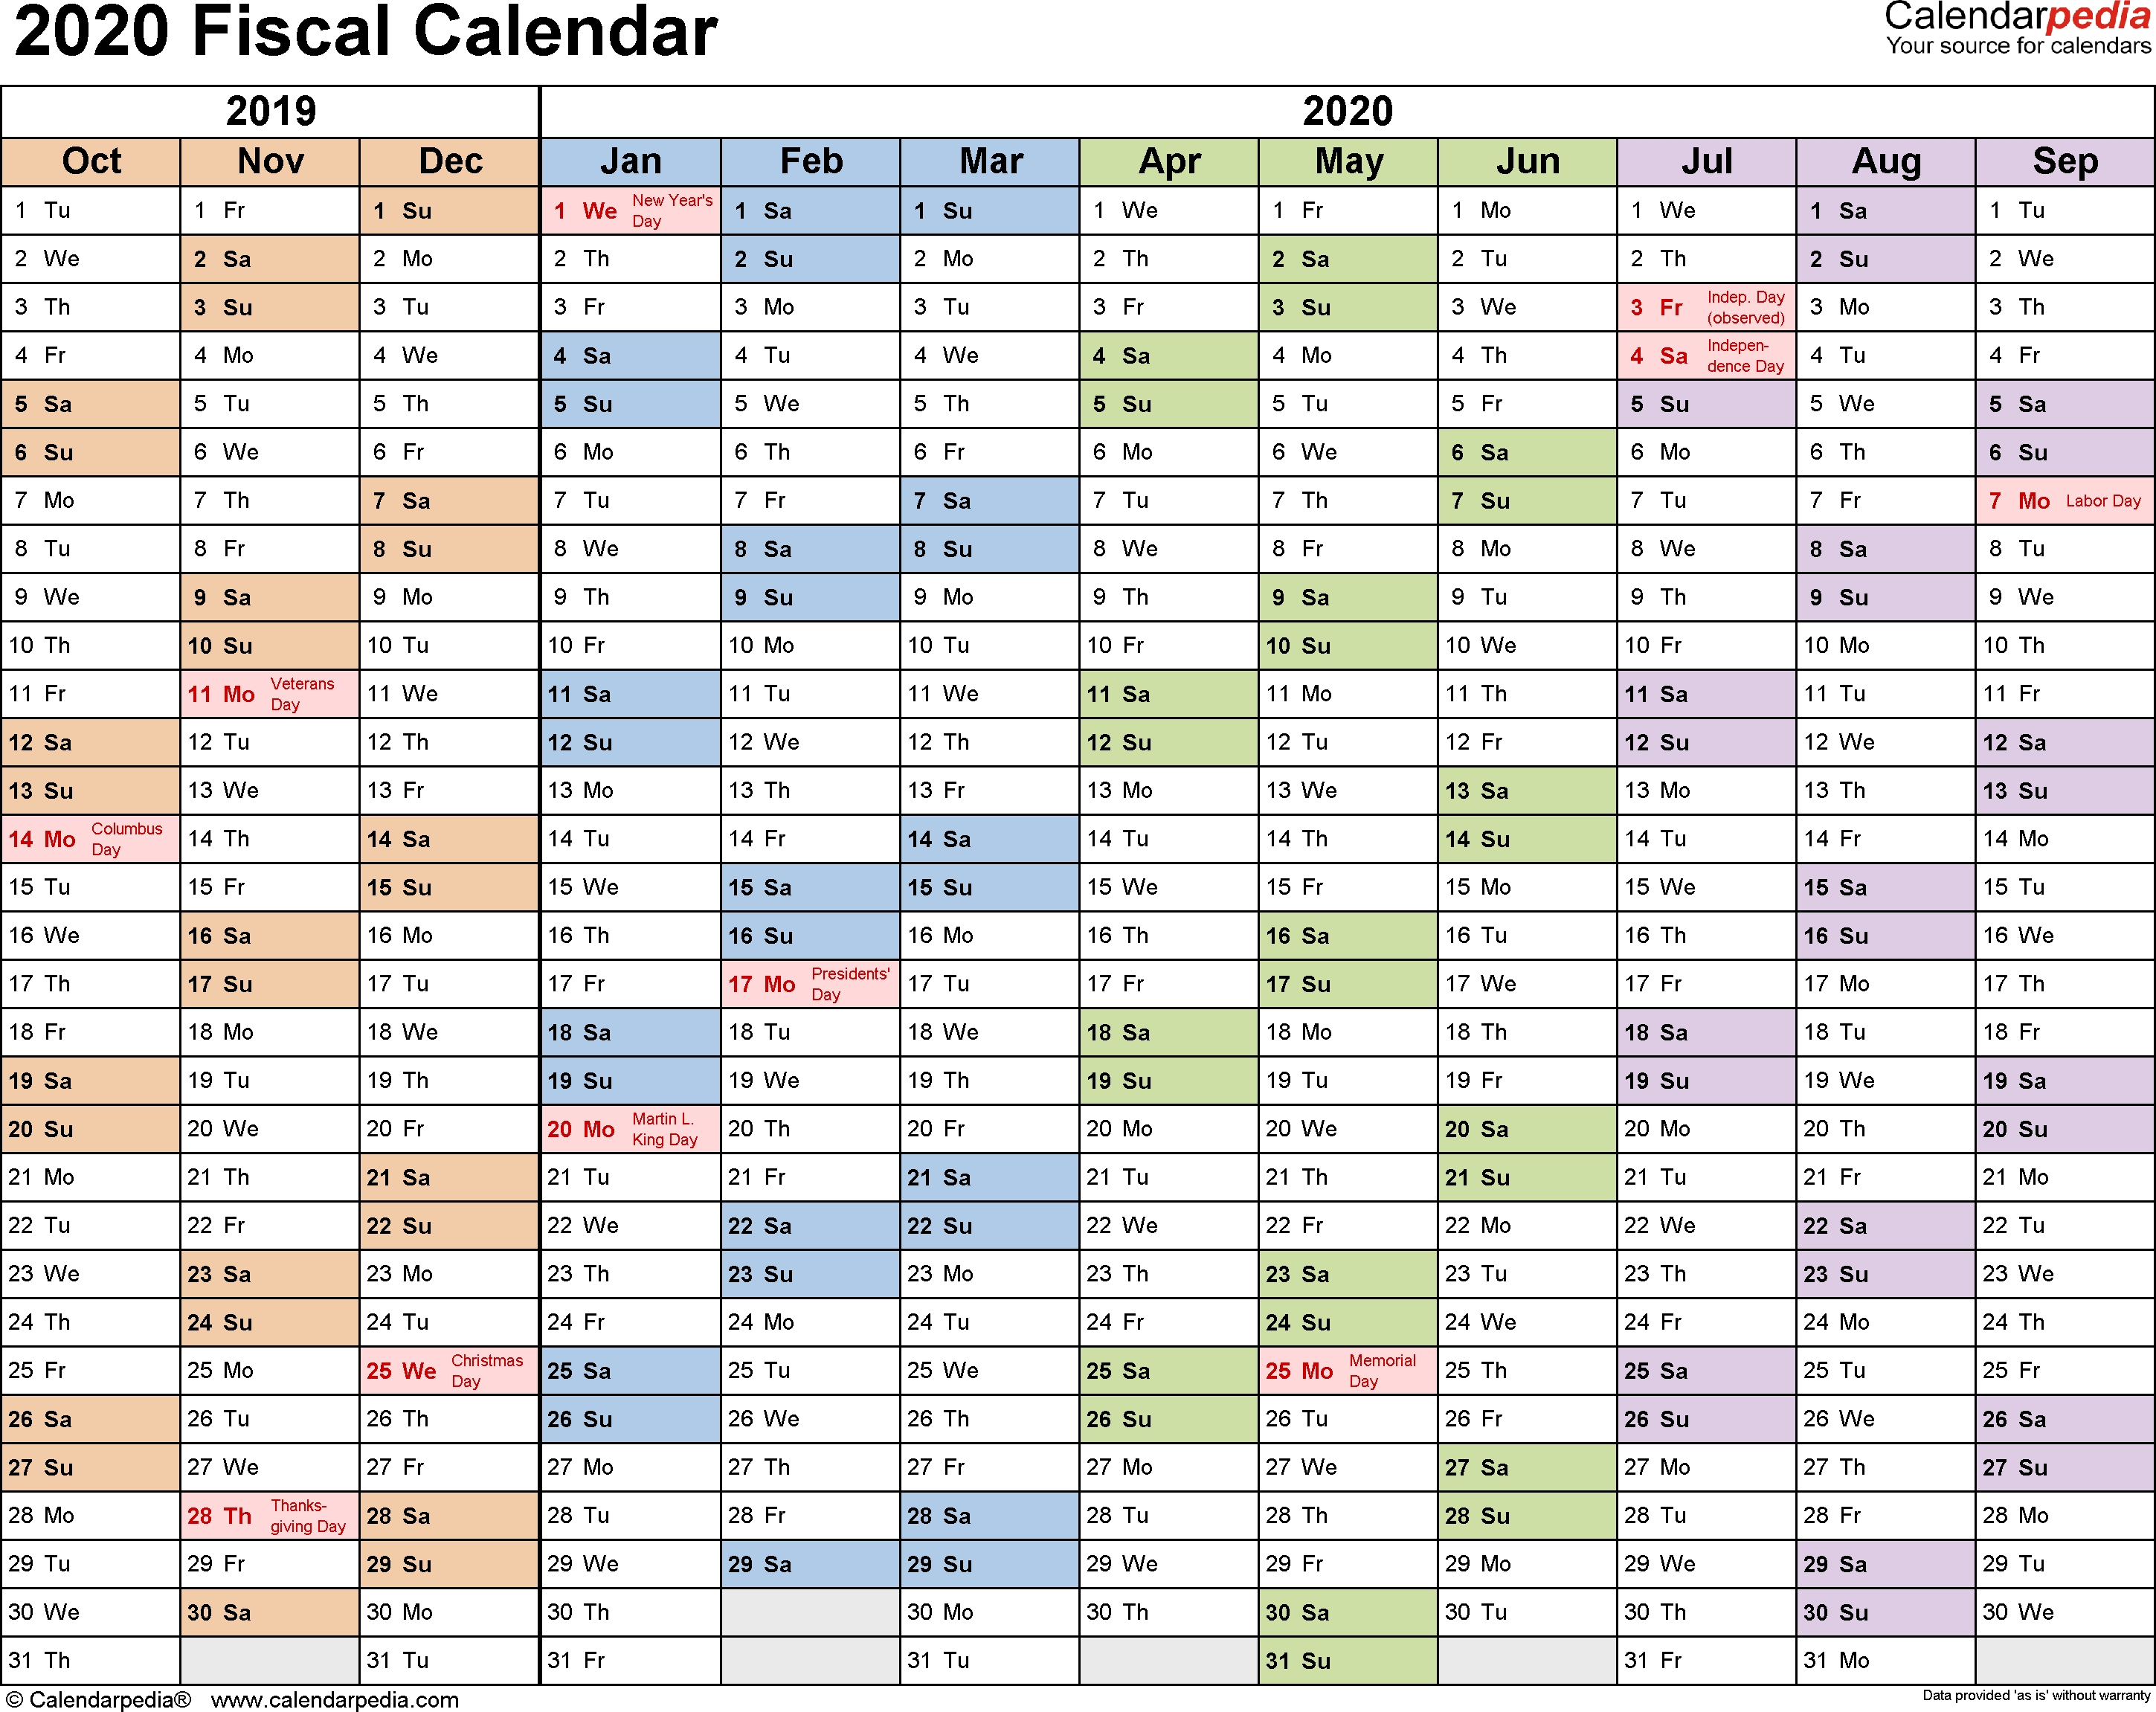 Fiscal Year 2020 Calendar - Colona.rsd7 in Federal Government Pay Period Calendar 2020